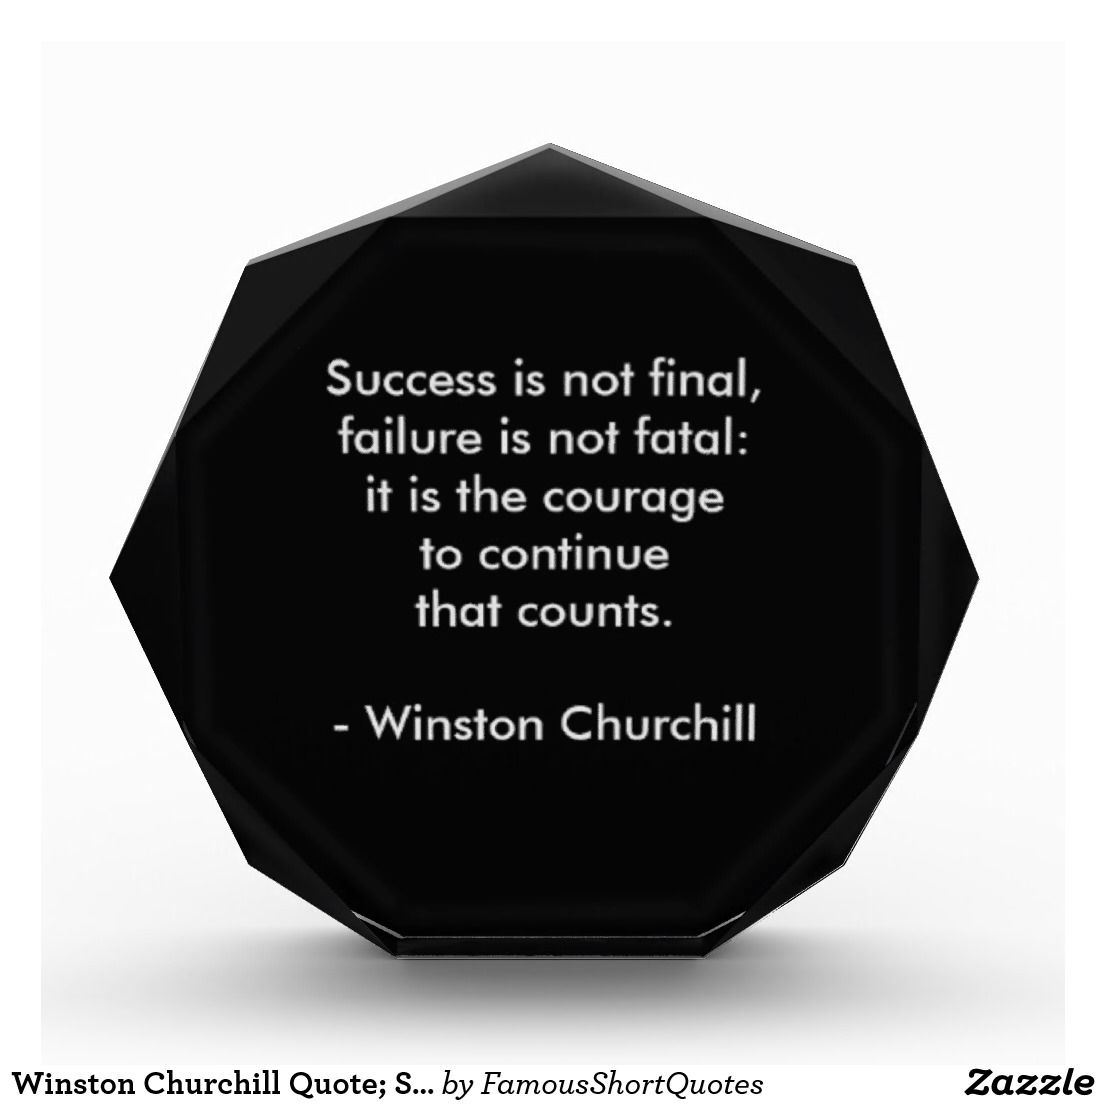 Famous Quotes About Success Winston Churchill Quote Success Award  Famous Short Quotes .